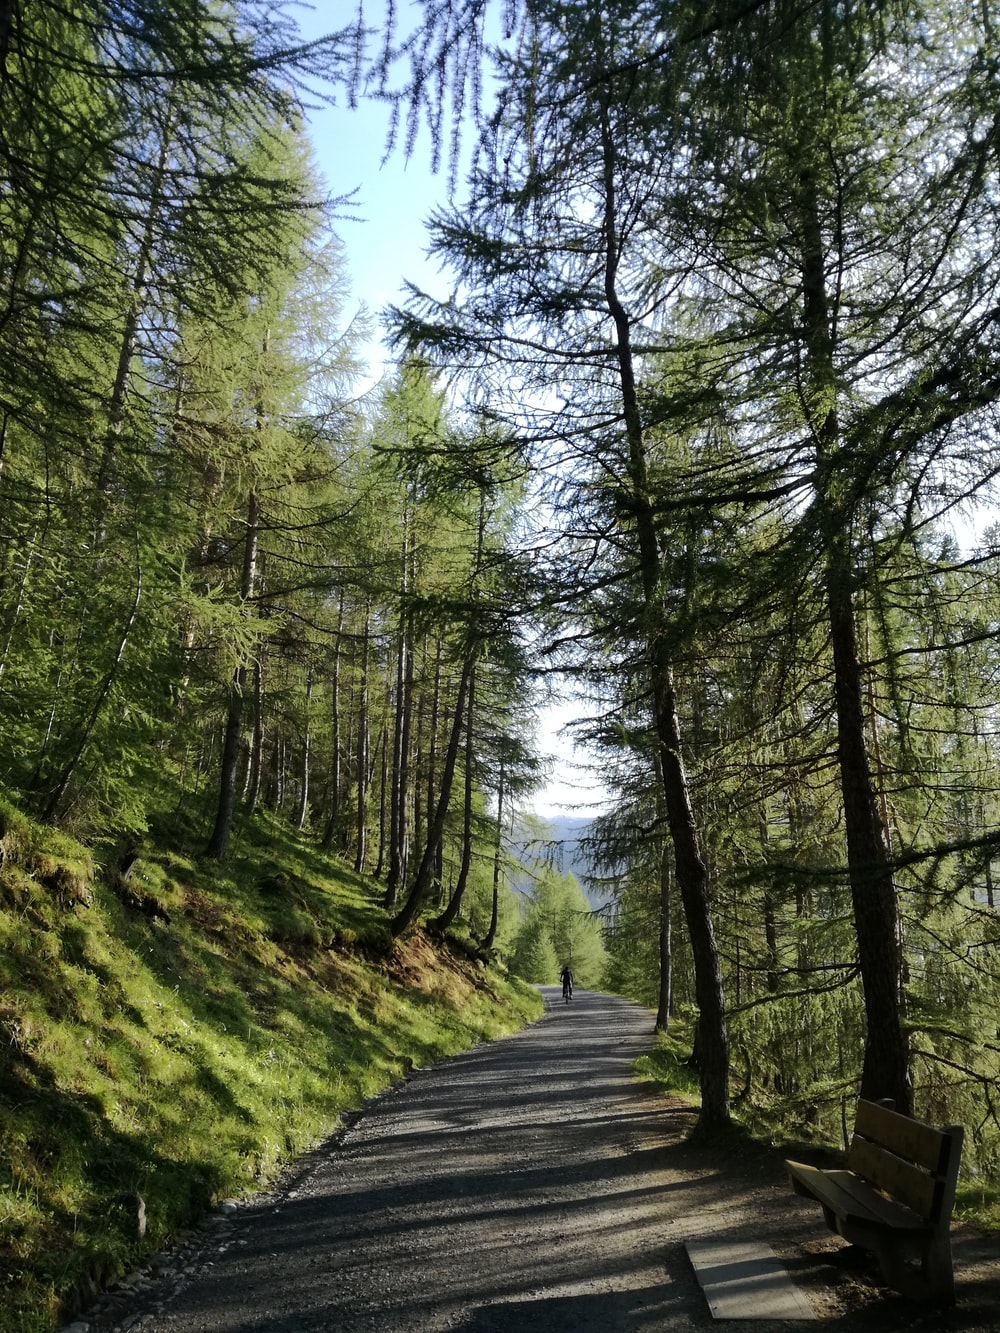 asphalt road surrounded by trees